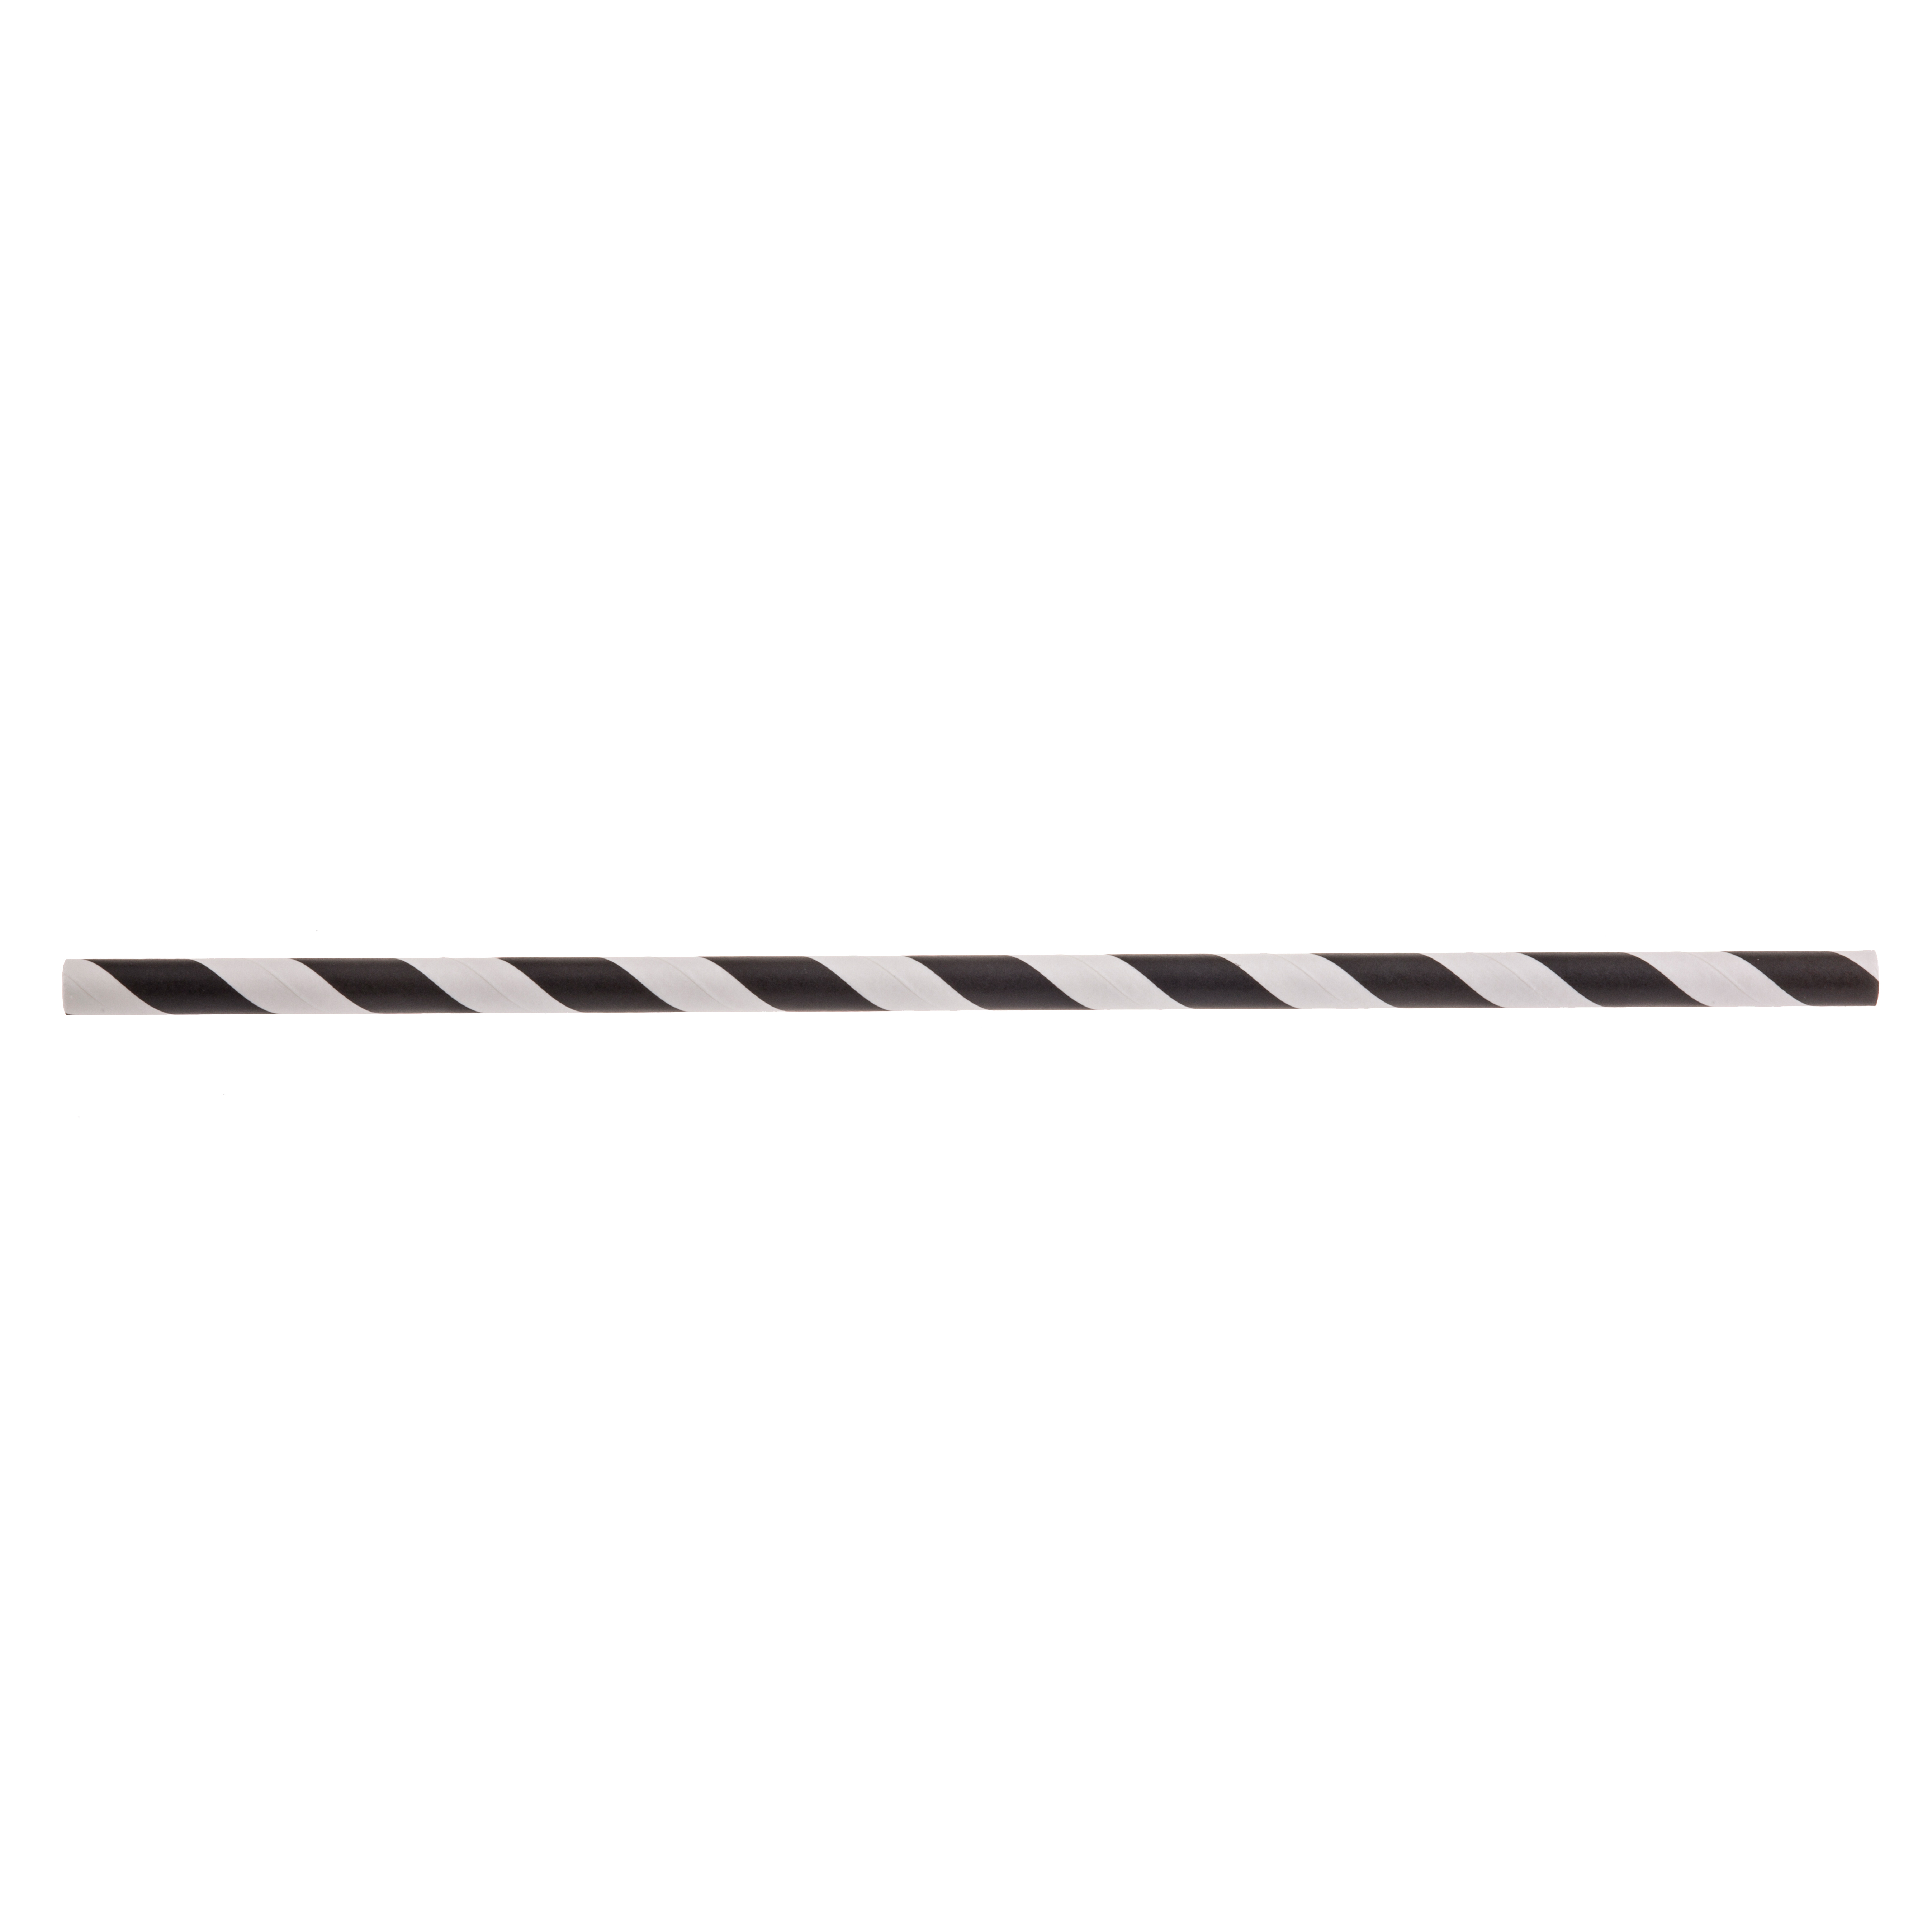 TableCraft Products 100111 straws